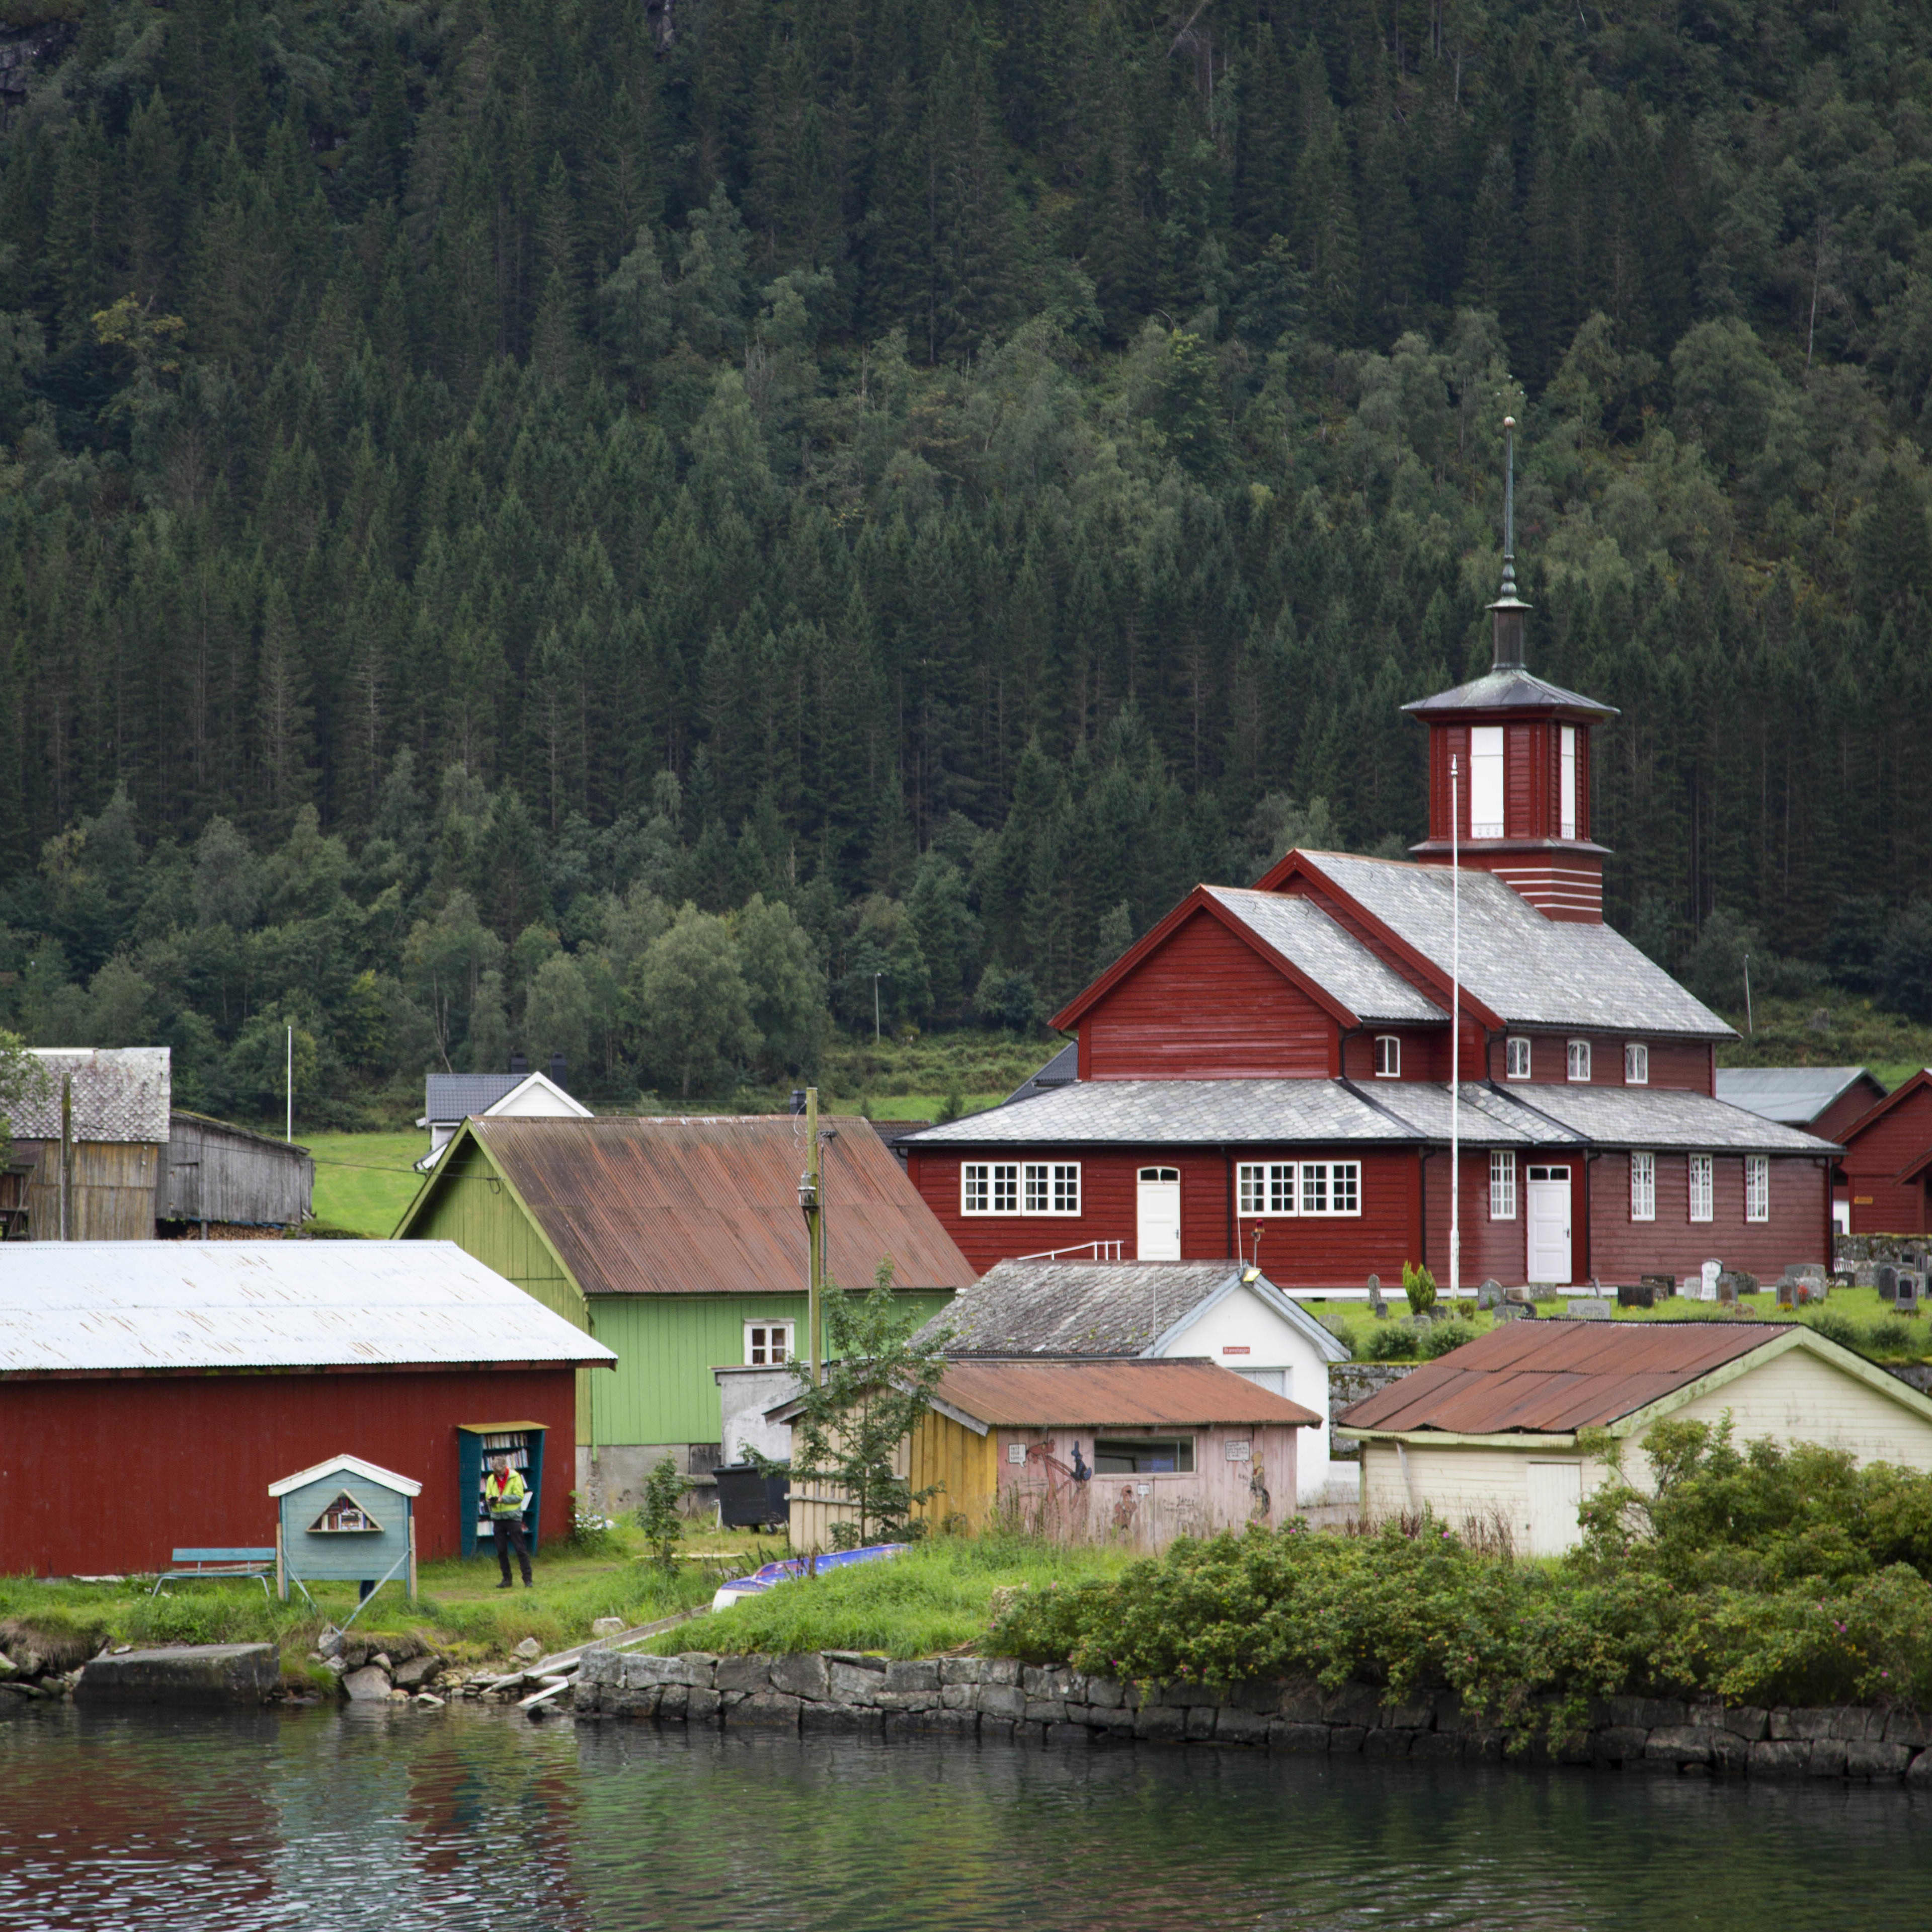 The small village of Fjærland seen from the water. The image portrays a red wooden church and some smaller houses in white, green and yellow surounding the church.